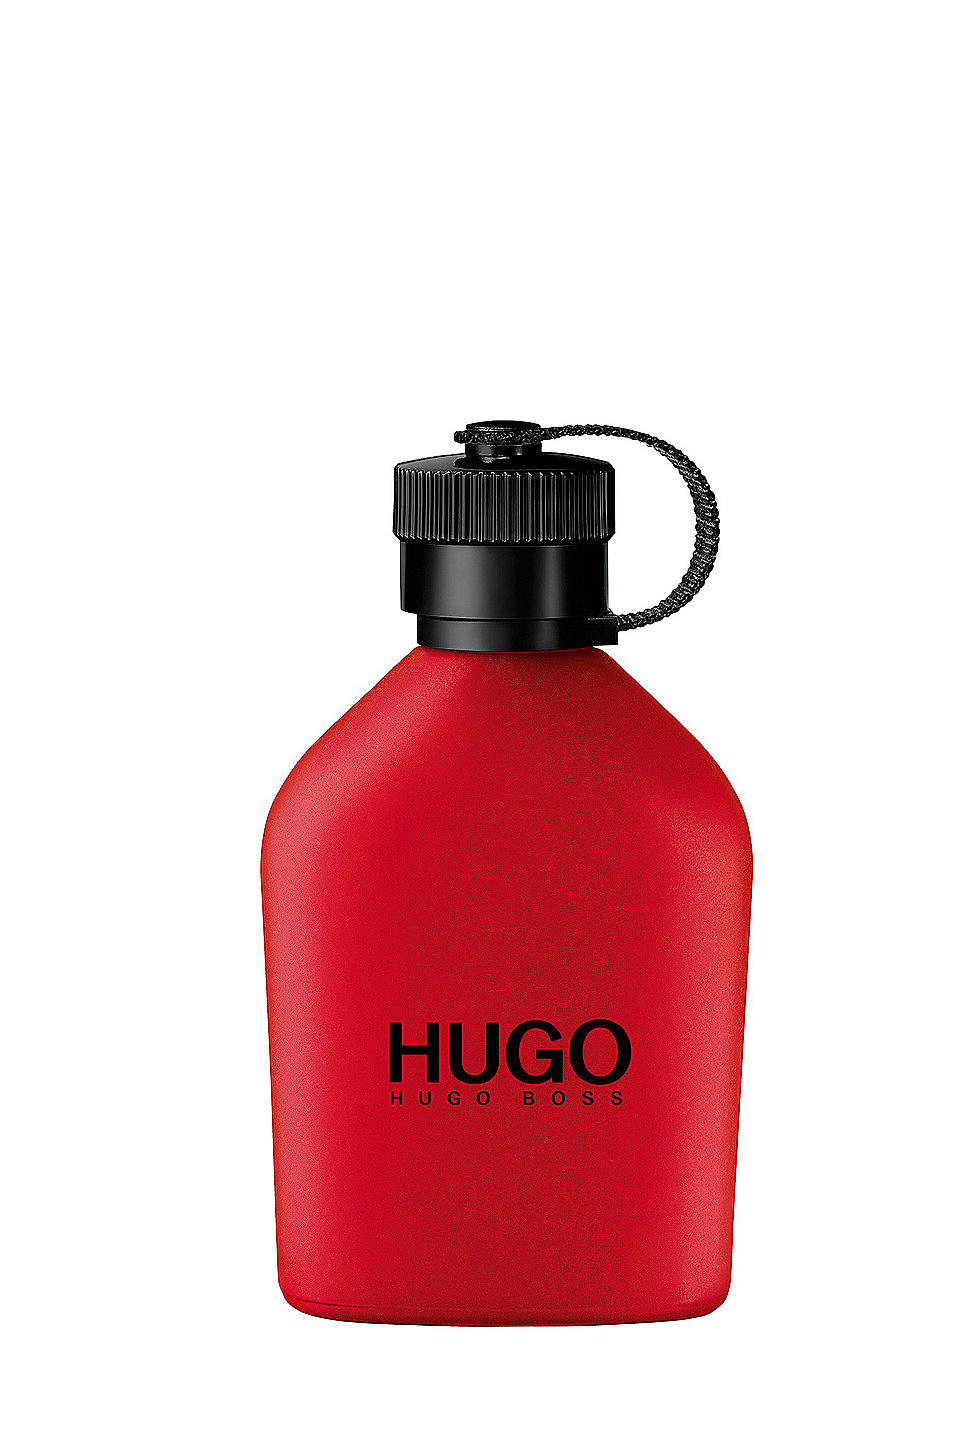 HUGO - 'HUGO Red' Eau de Toilette 125 ml